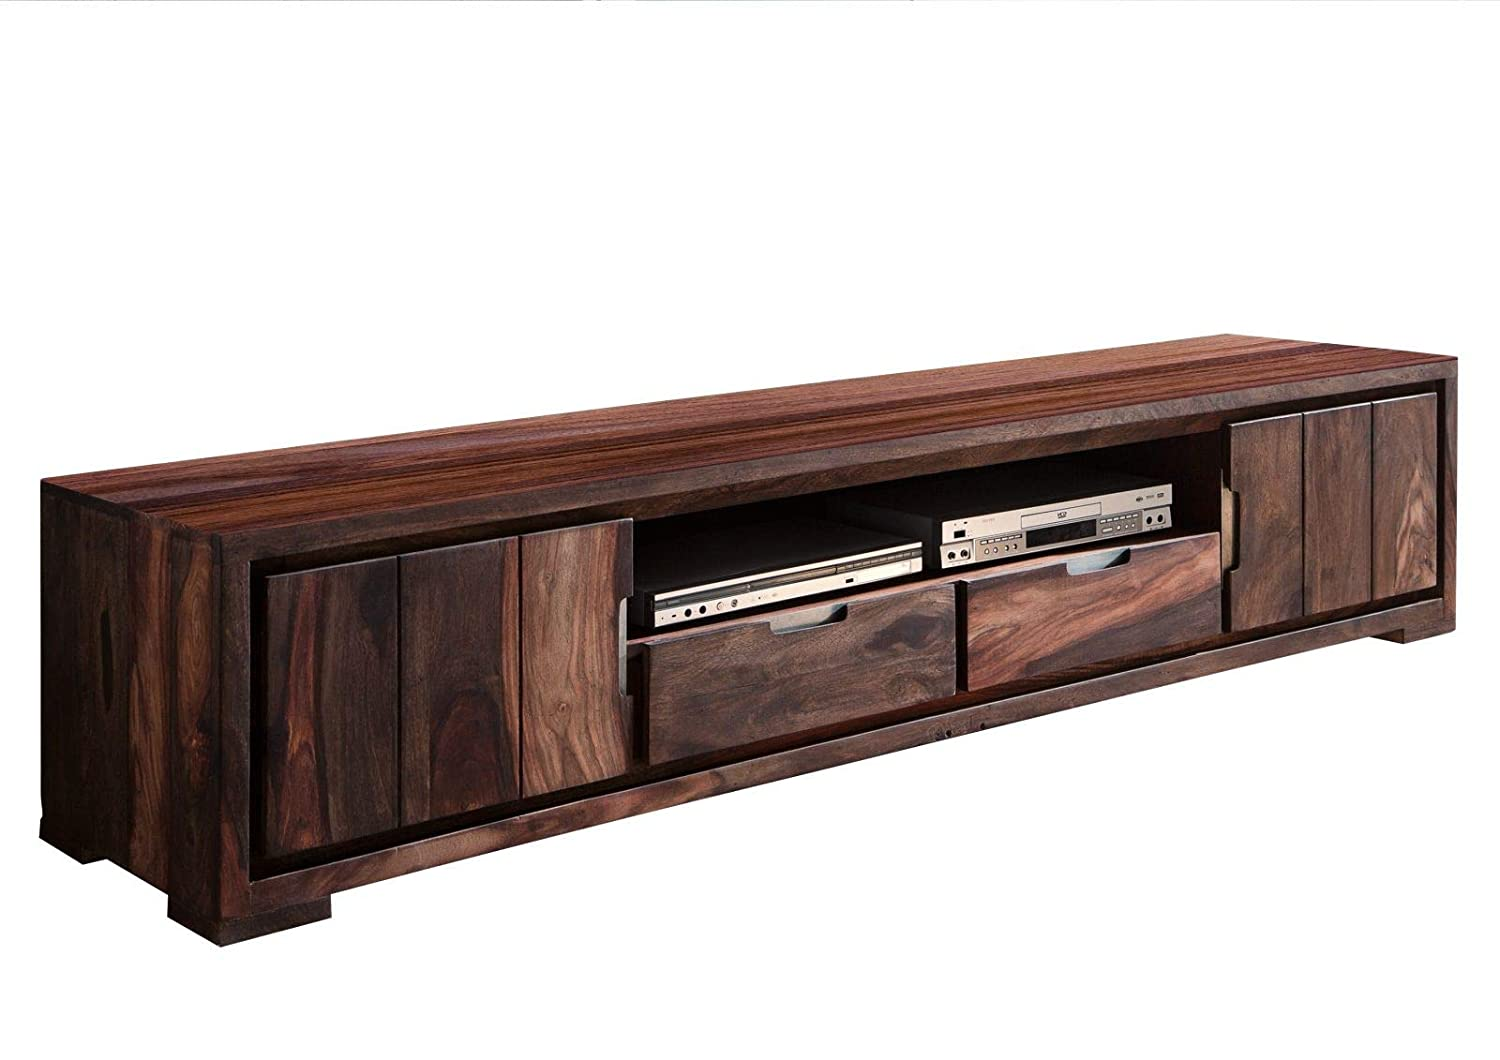 Renvik Wooden TV Stand Unit for Living Room with 2 Cabinets, 2 Drawers & Shelf Storage  Sheesham, Dark Brown